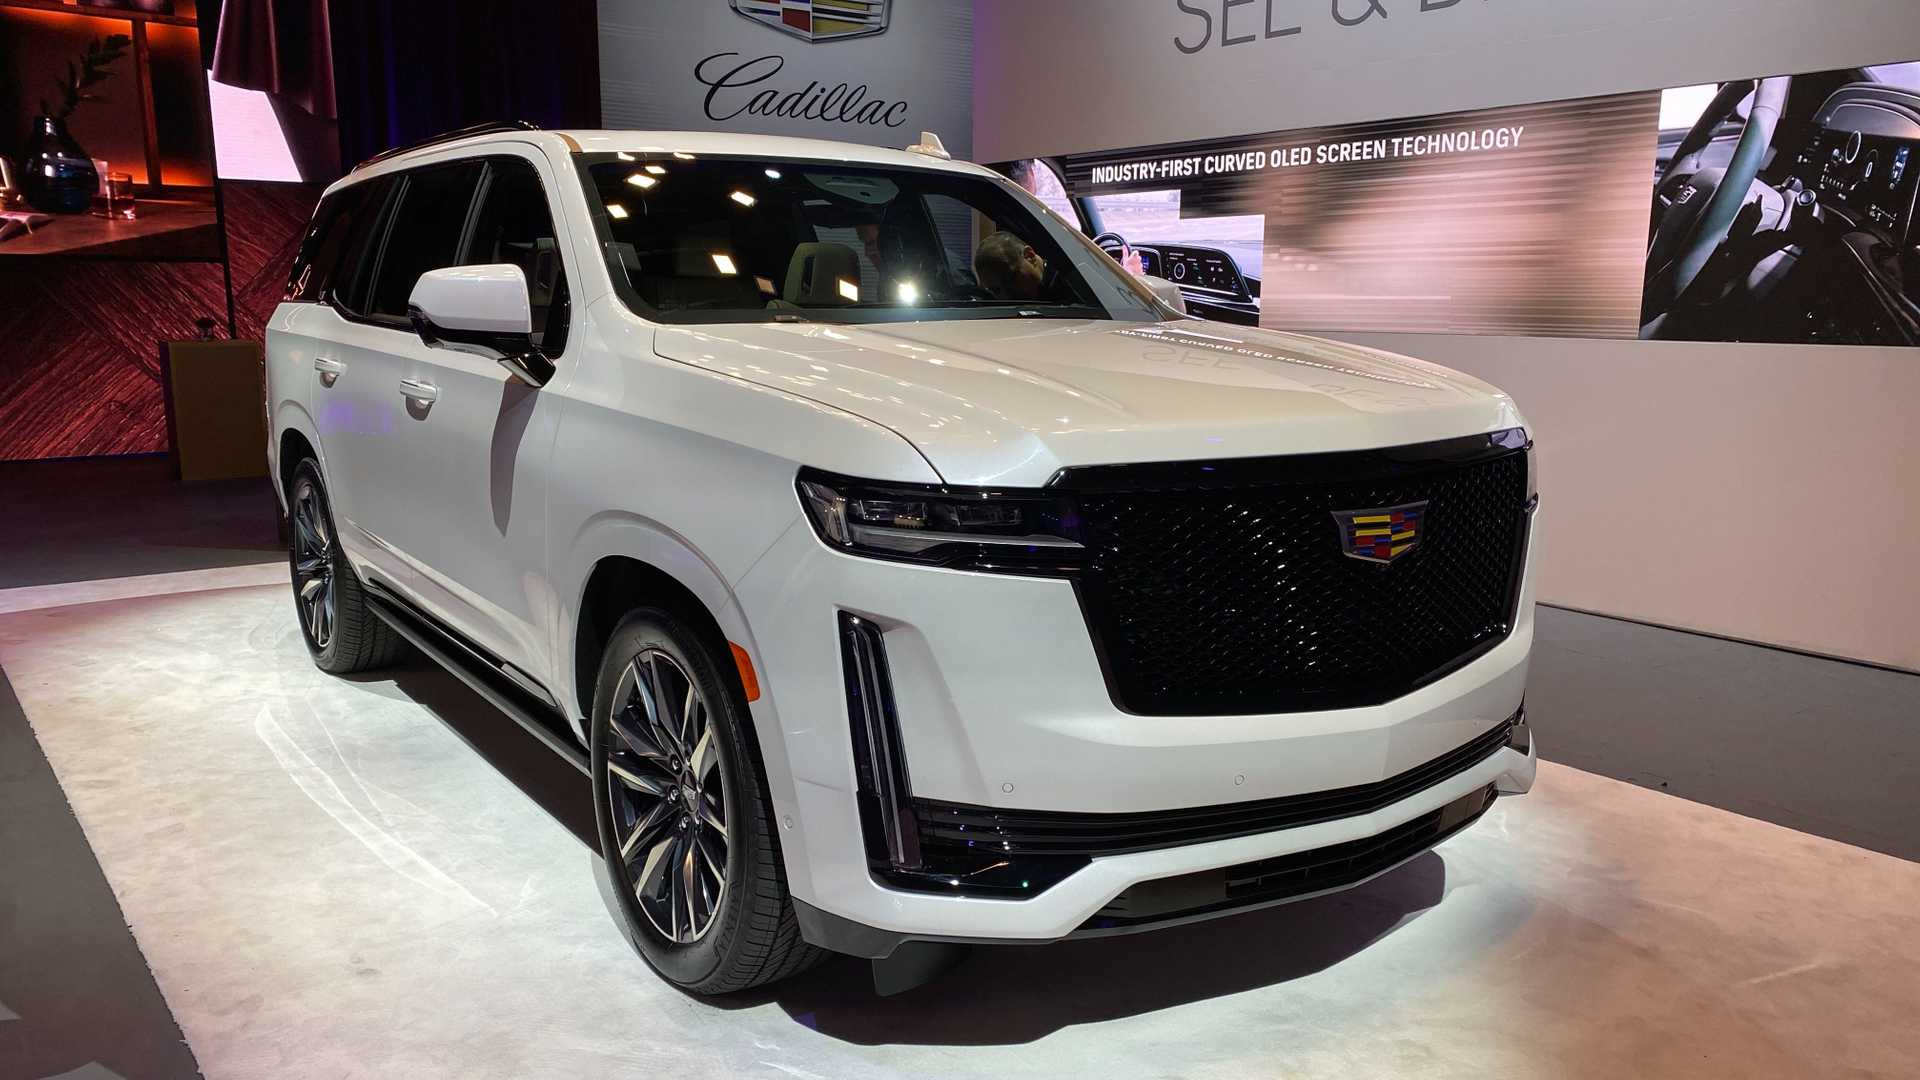 2021 cadillac escalade debuts new look interior tech and specs 2021 cadillac escalade debuts new look